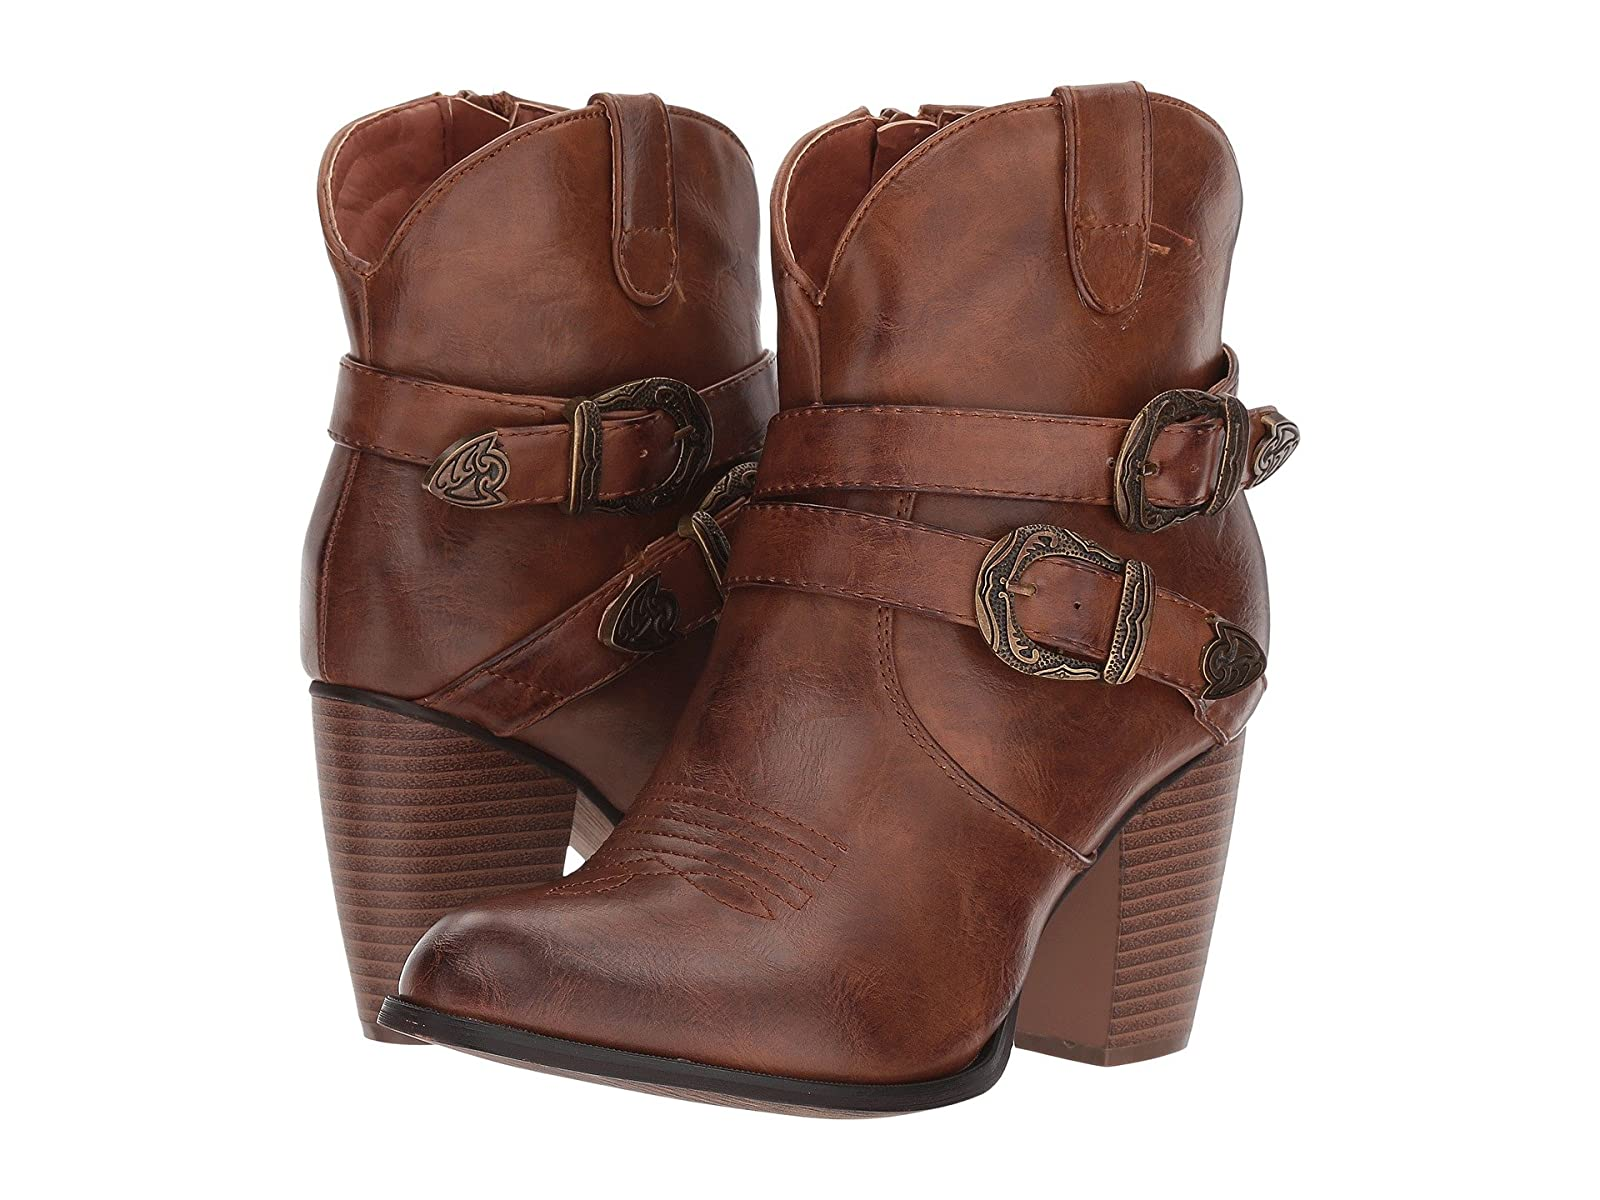 Roper MaybelleEconomical and quality shoes